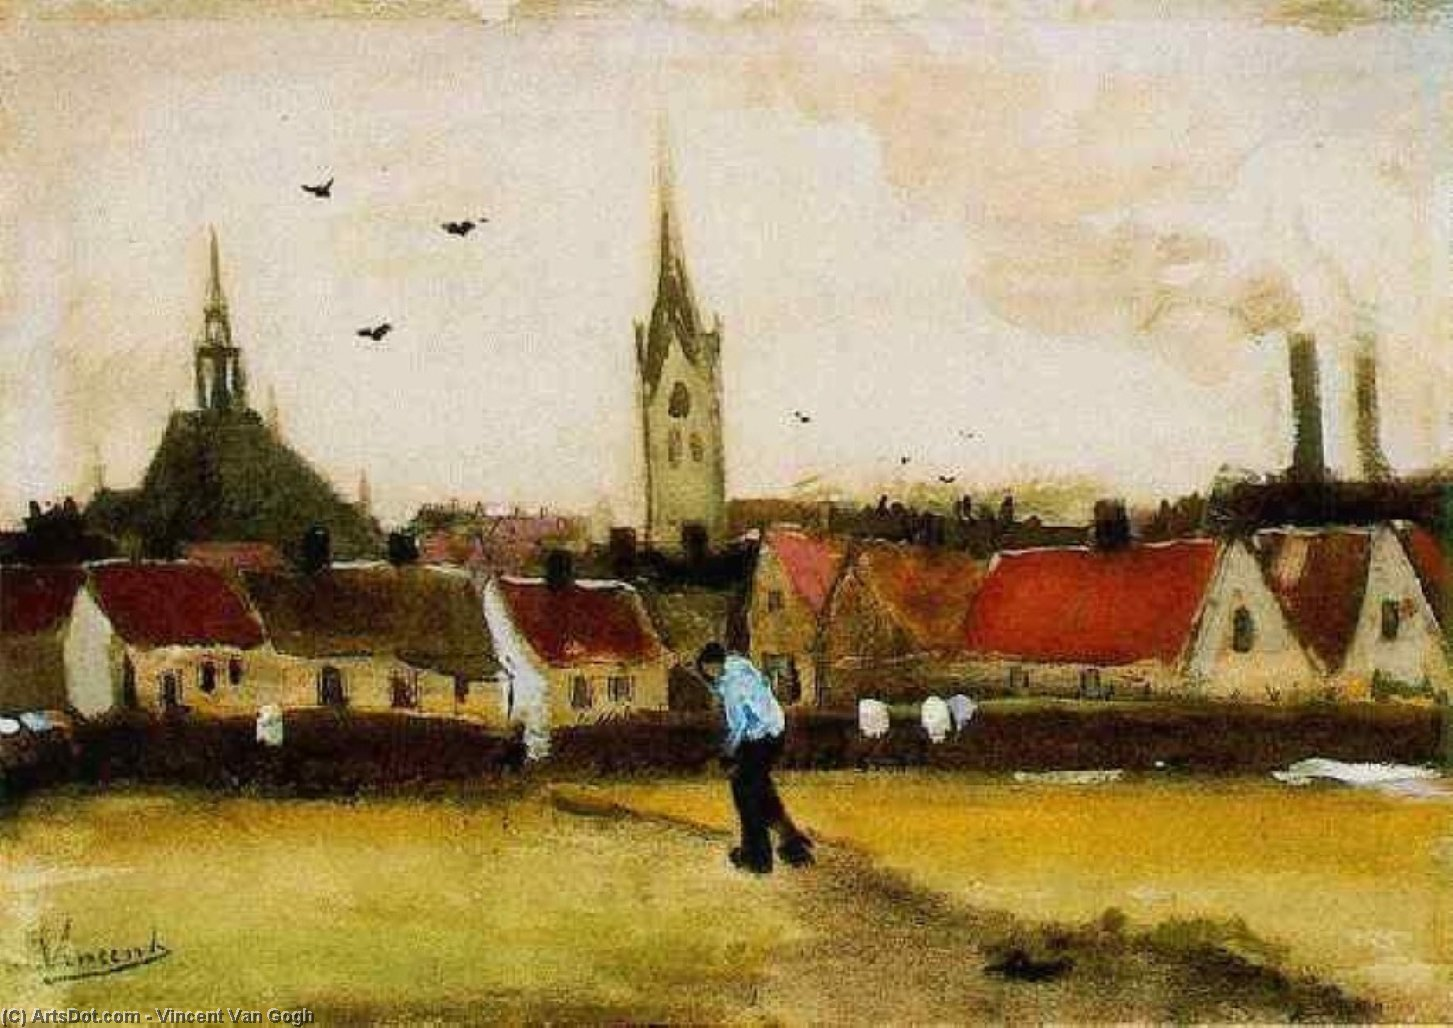 Wikioo.org - The Encyclopedia of Fine Arts - Painting, Artwork by Vincent Van Gogh - View of The Hague with the New Church